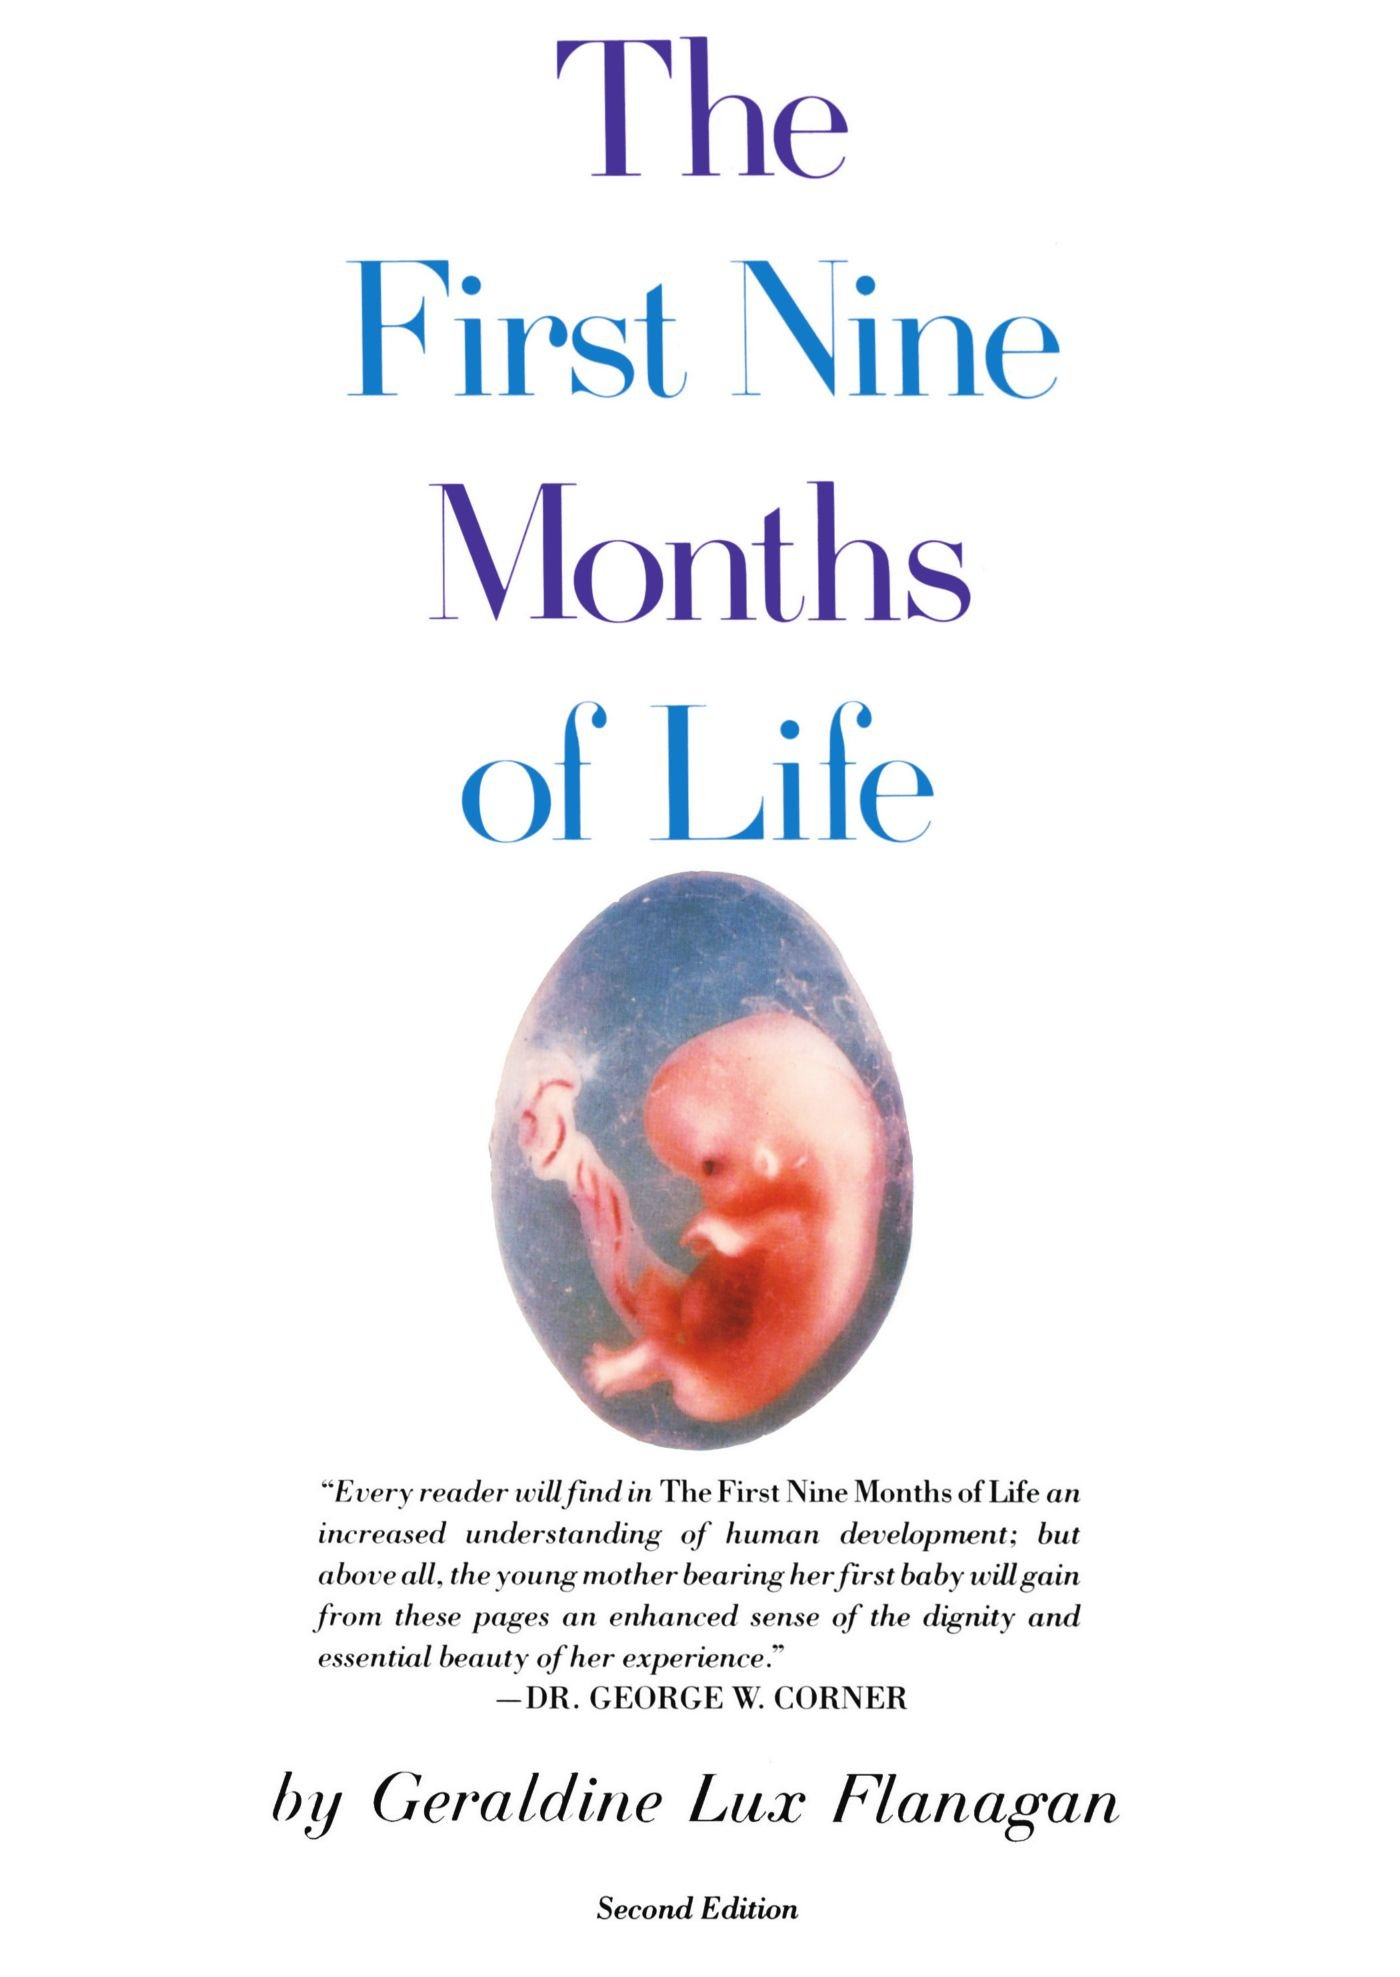 The very first months of life